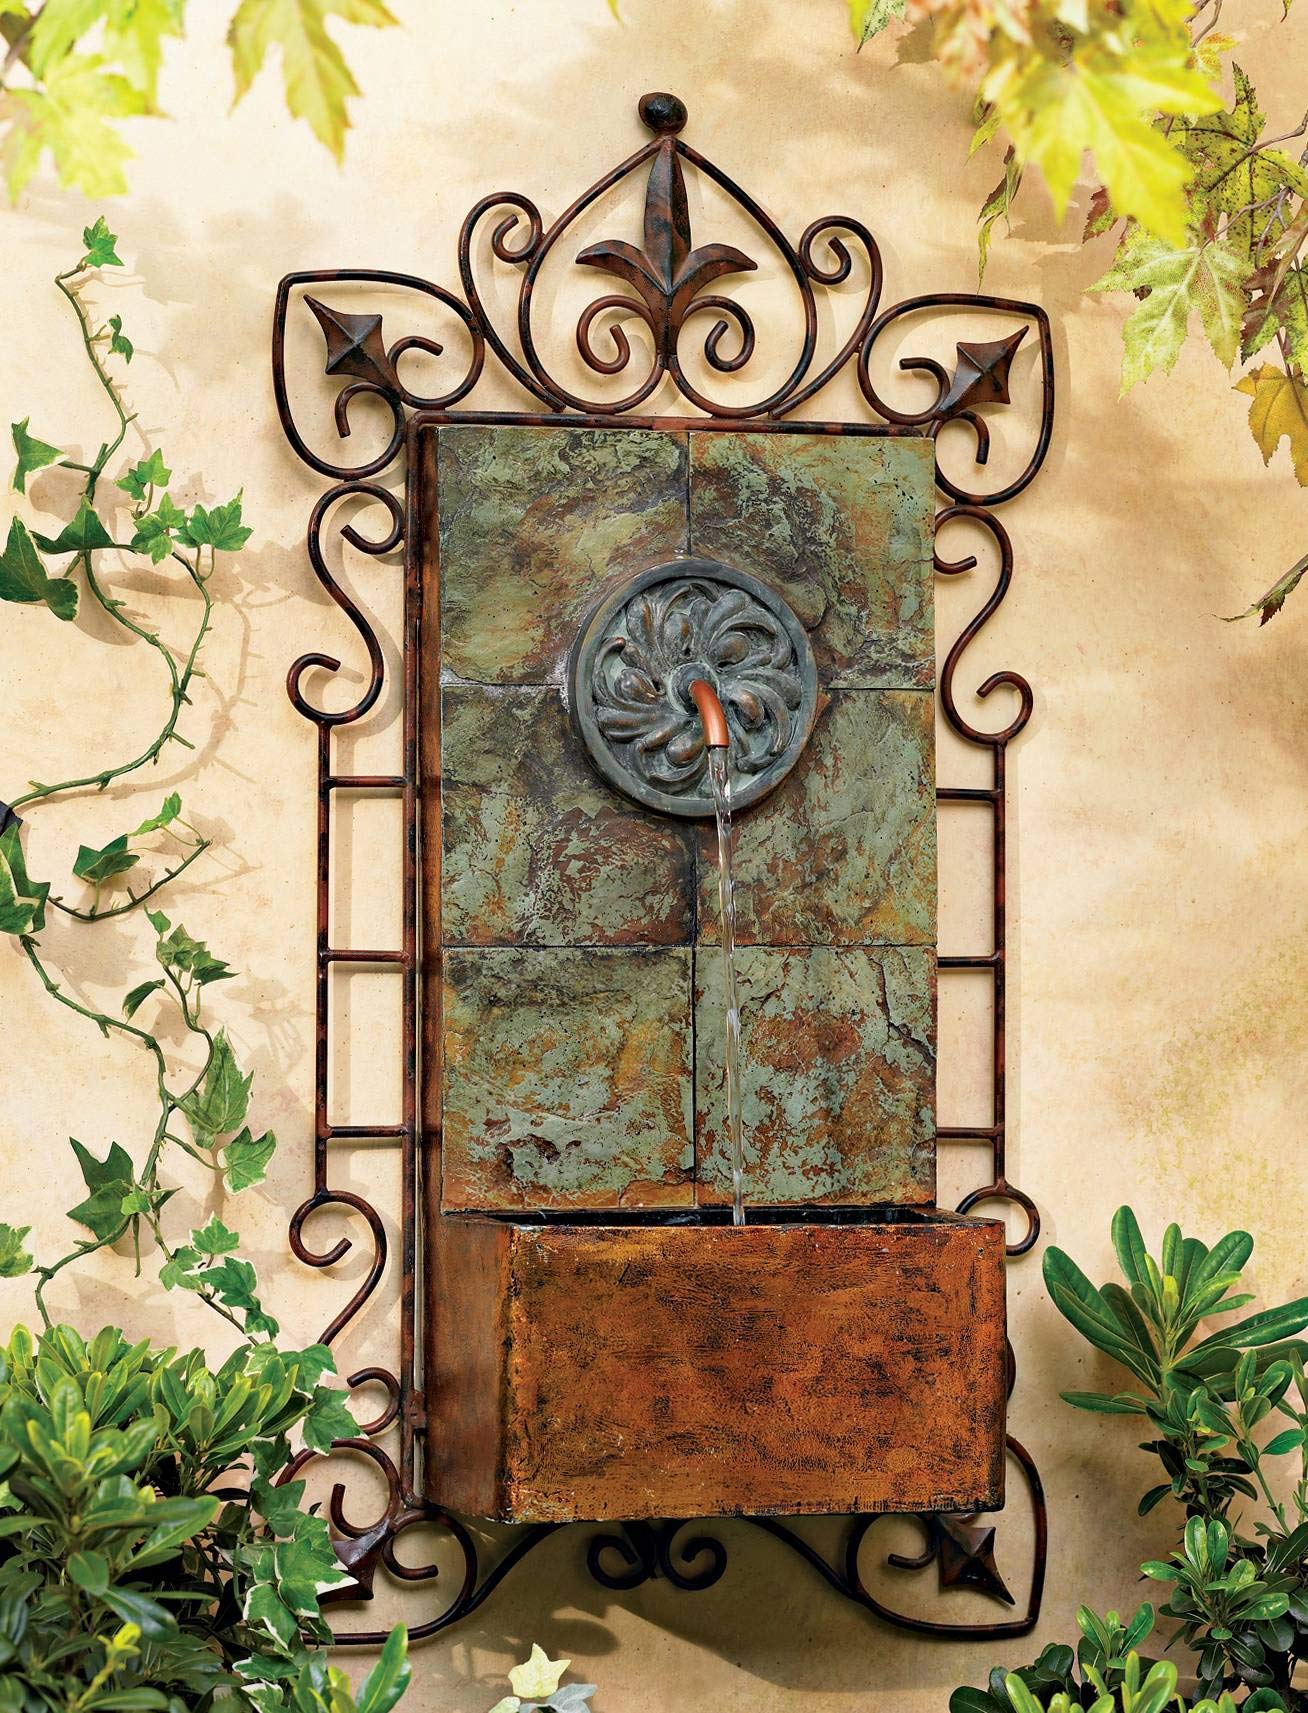 John Timberland Ibizi Rustic Outdoor Wall Water Fountain with Light LED 33'' High Medallion for Yard Garden Patio Deck Home Hallway Entryway by John Timberland